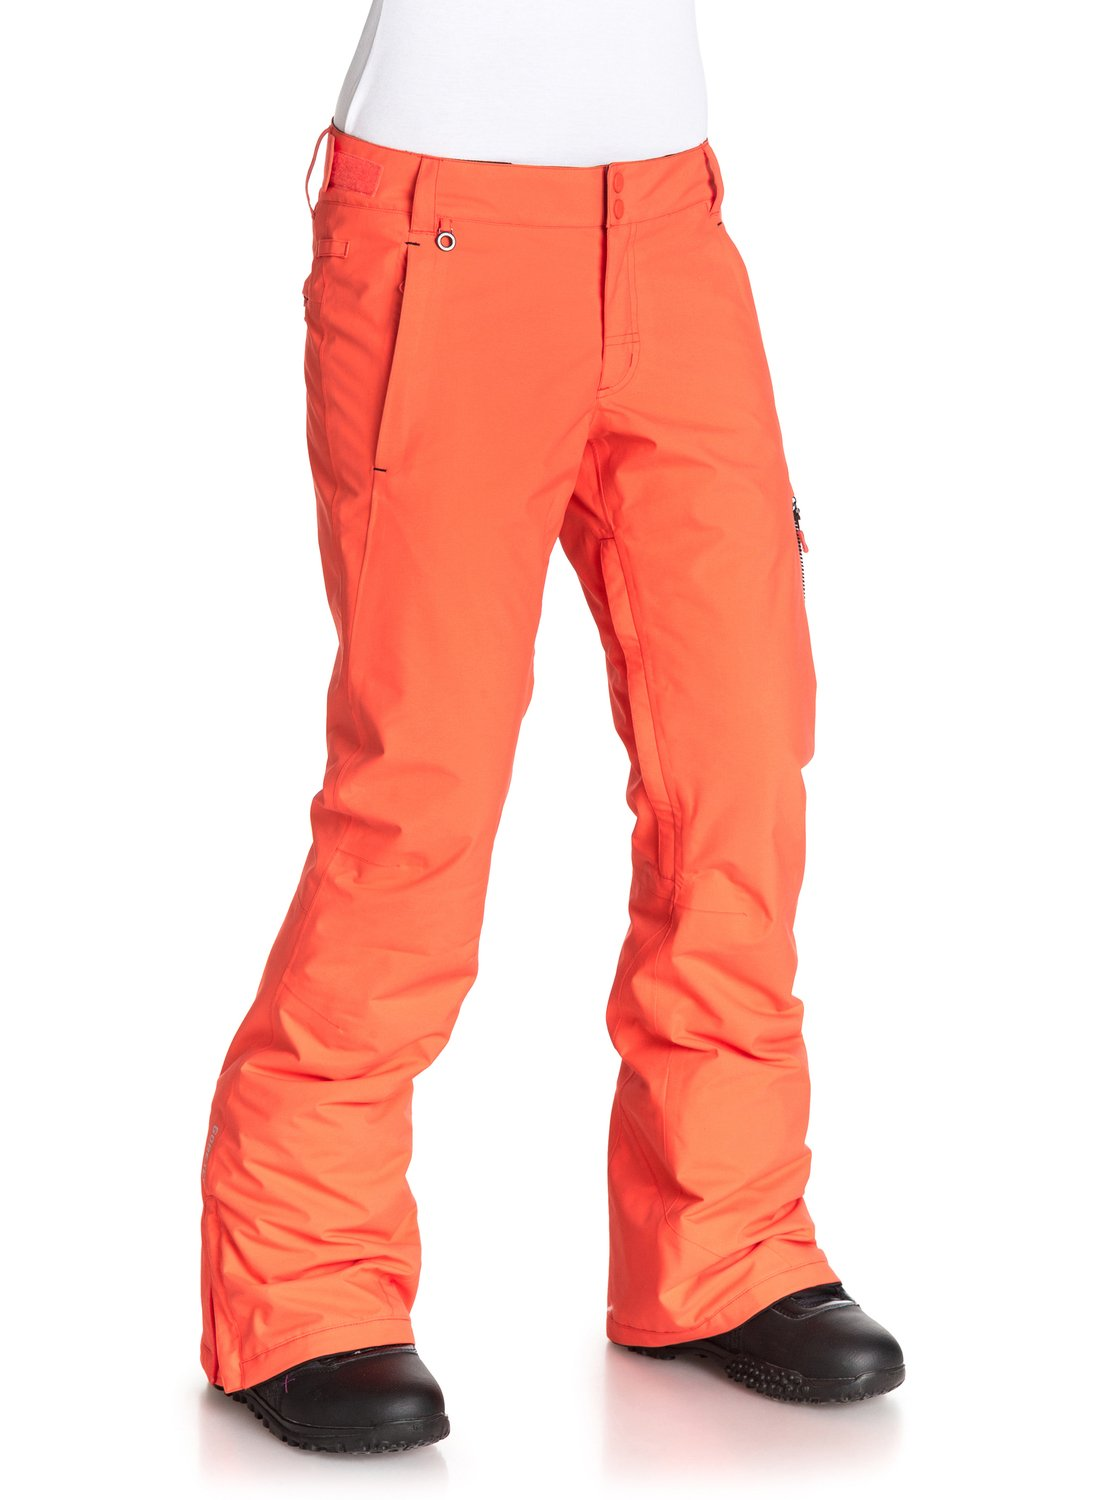 Nylon Taffeta Snow Pants 24